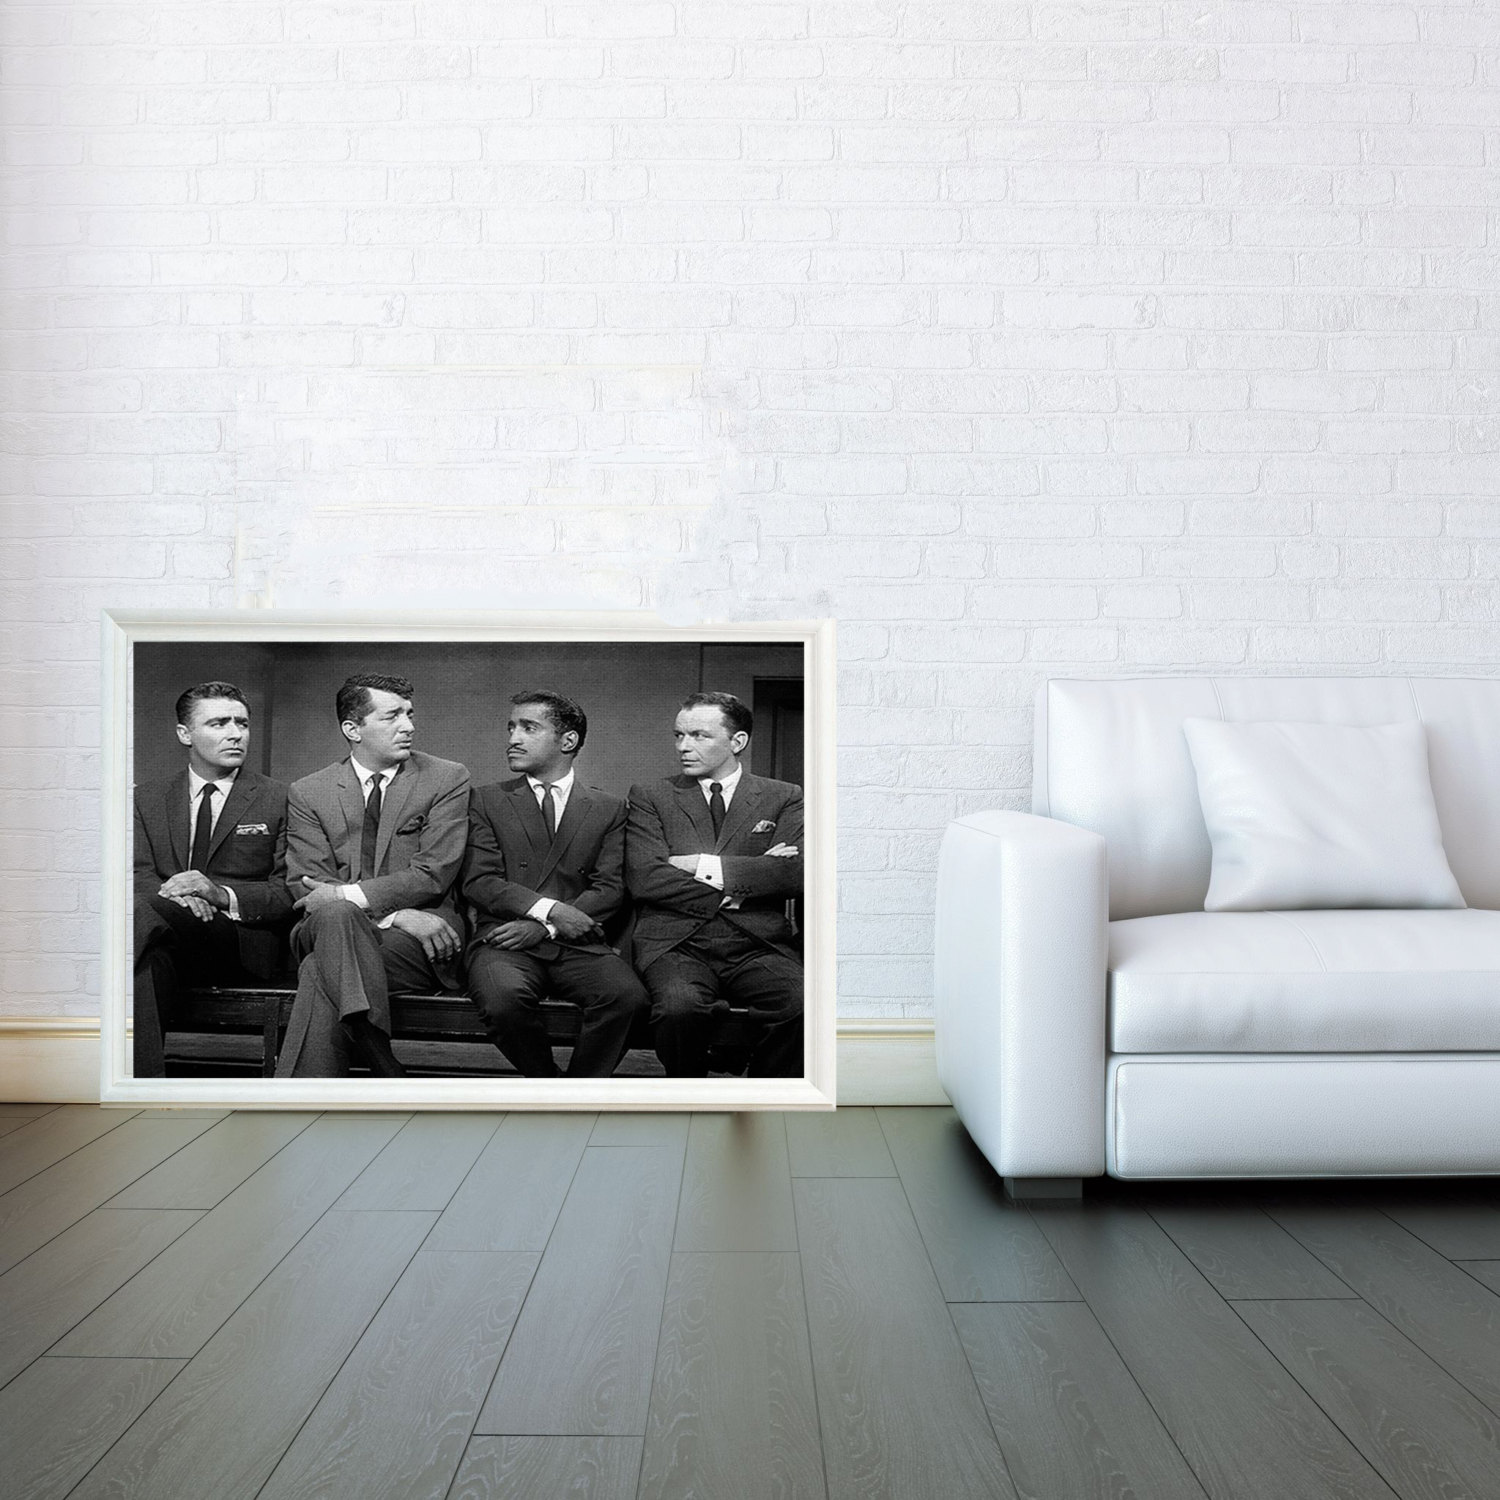 Rat Pack Mosaic Decorative Arts Prints Posters Wall Art Print Poster Any Size Black And White